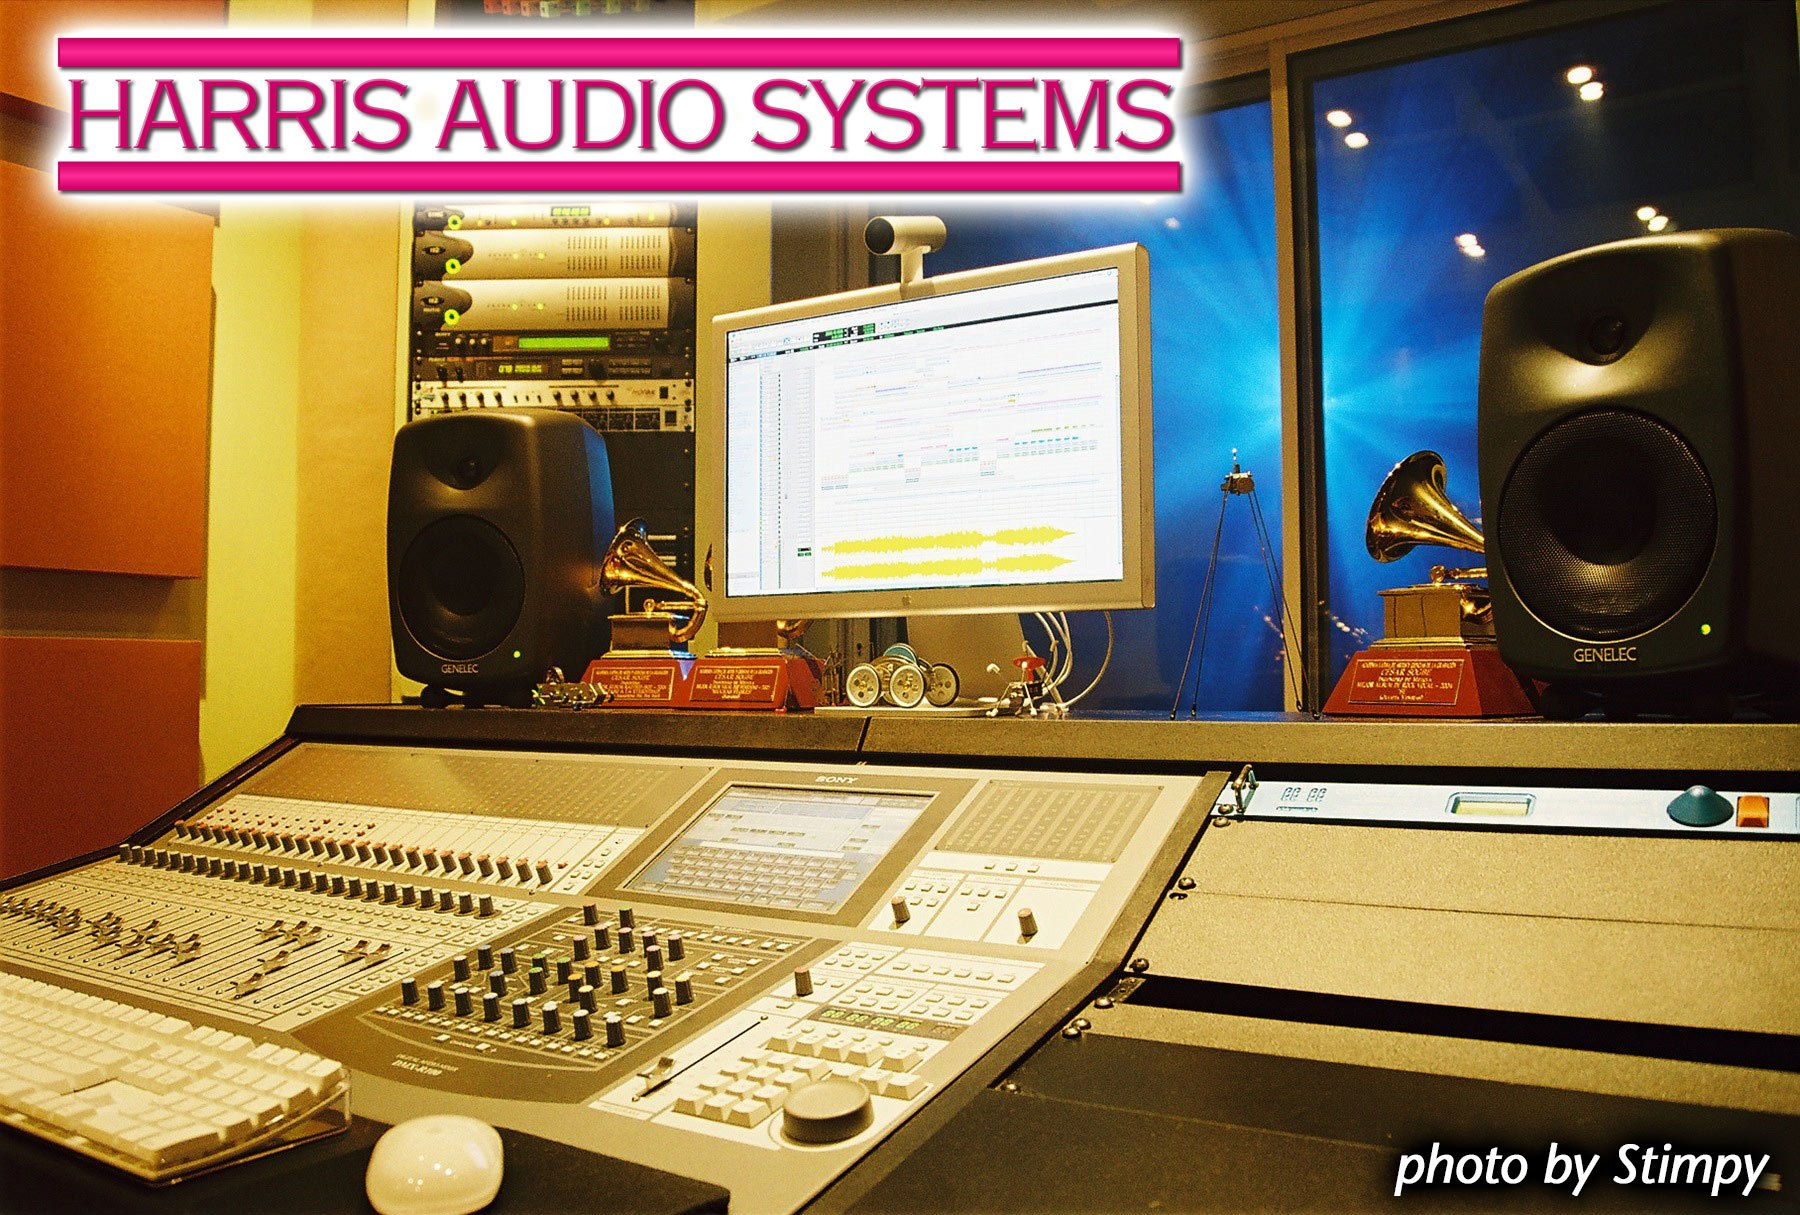 Harris Audio Systems